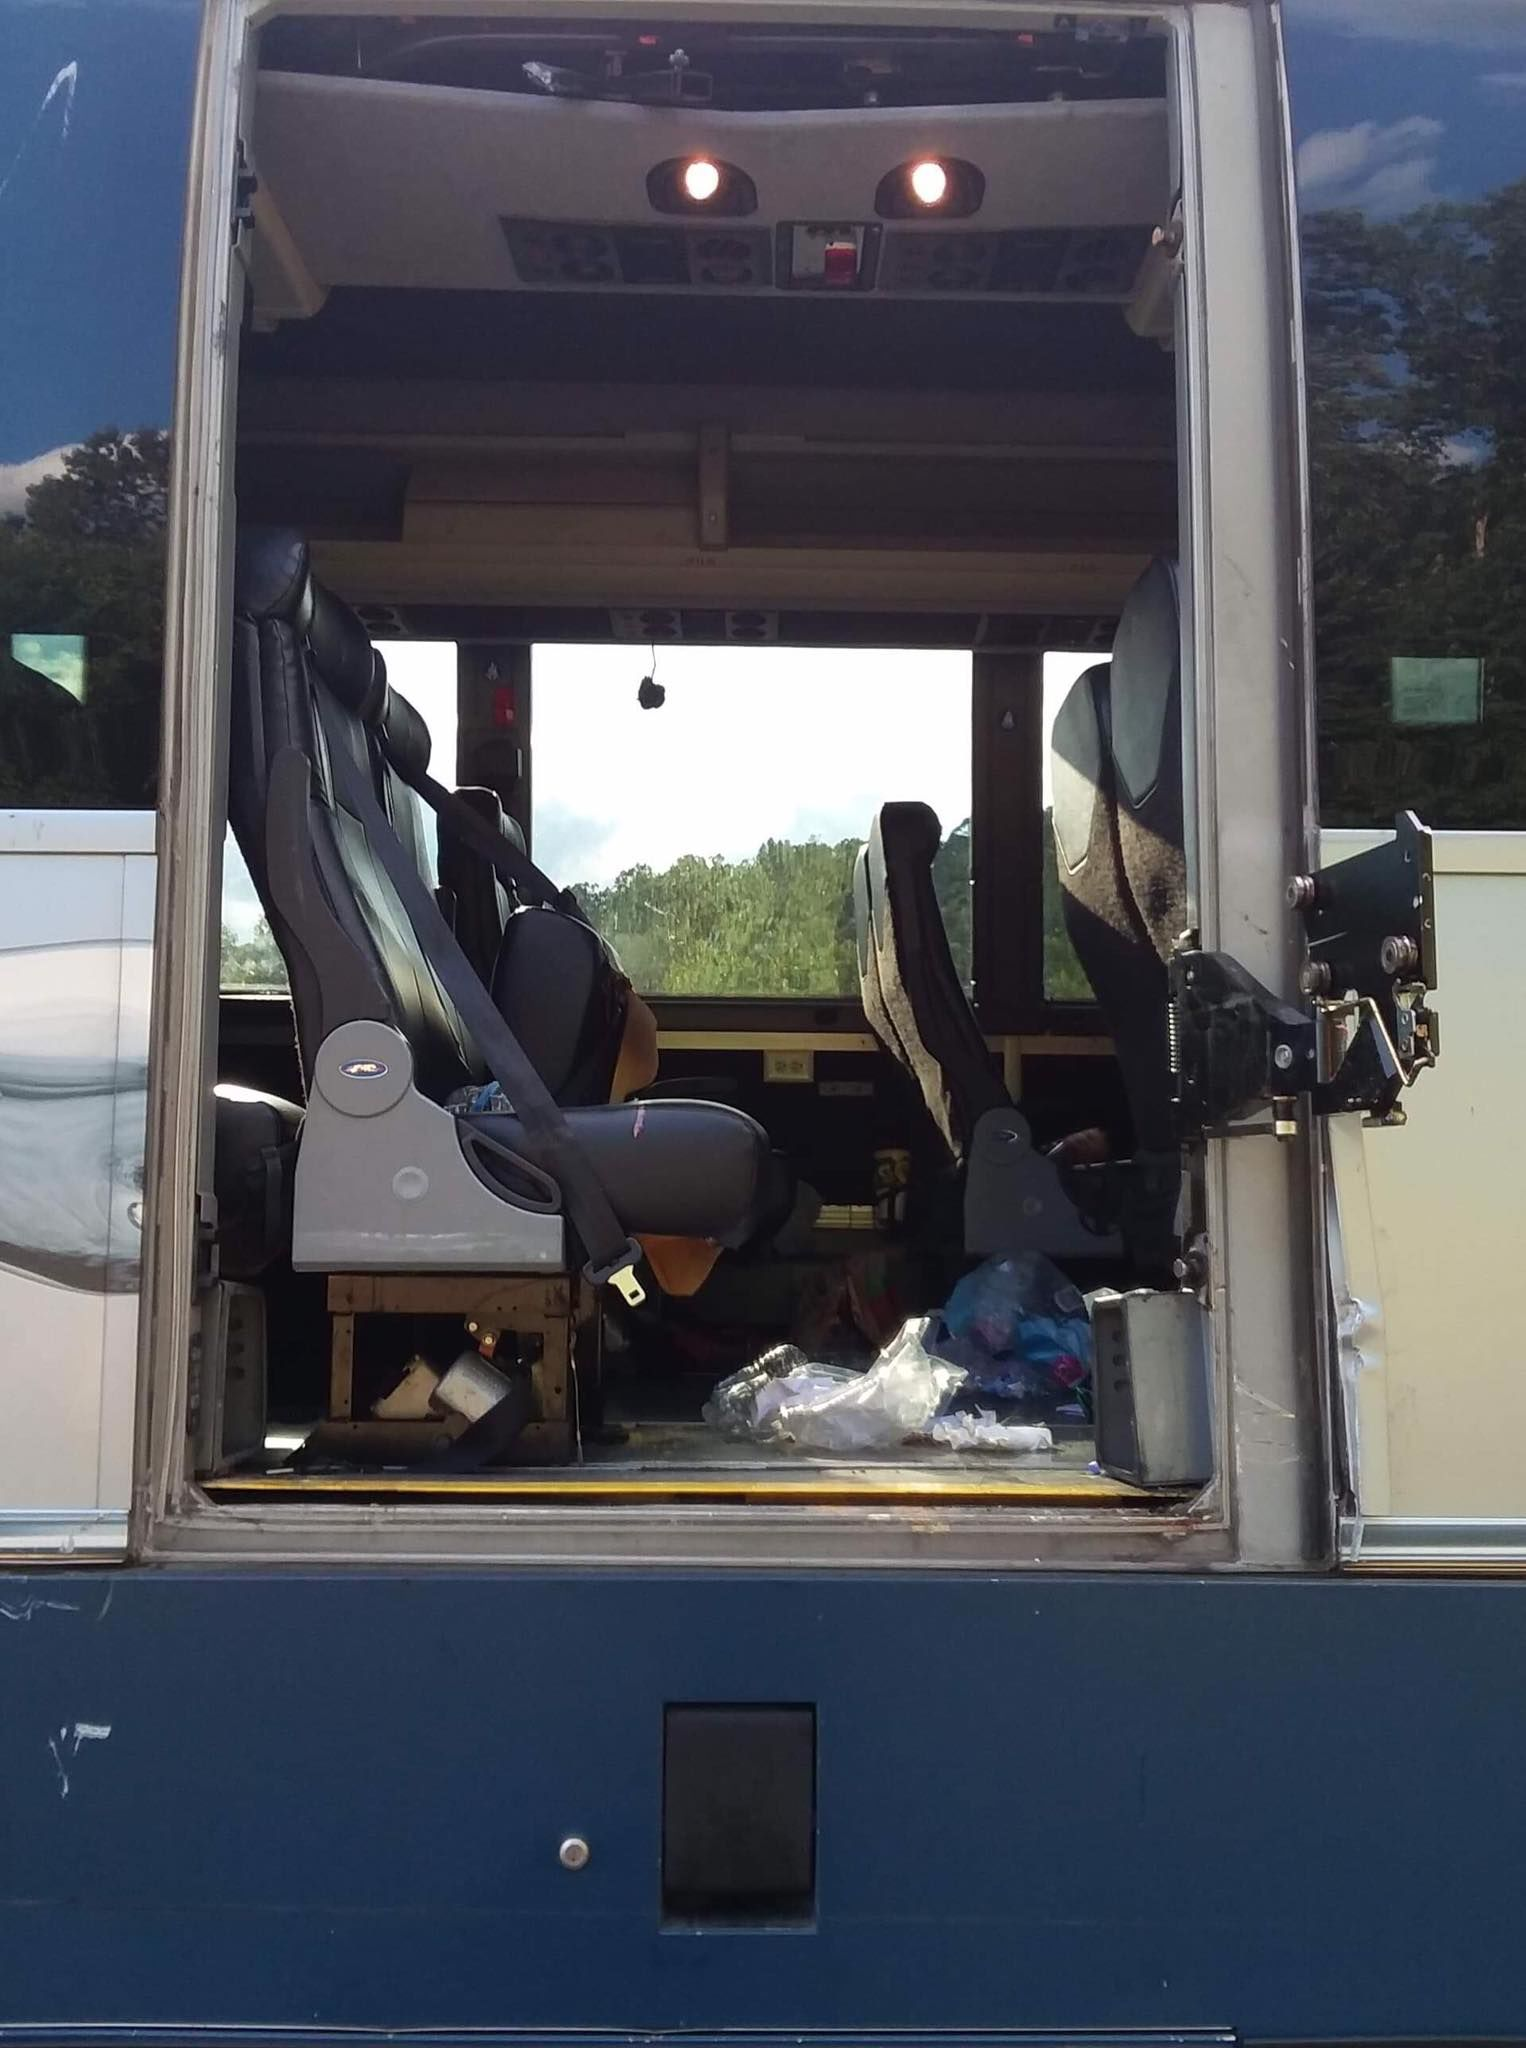 At least 17 injured in crash between truck and Greyhound bus in Kentucky (Mount Vernon Fire Department)